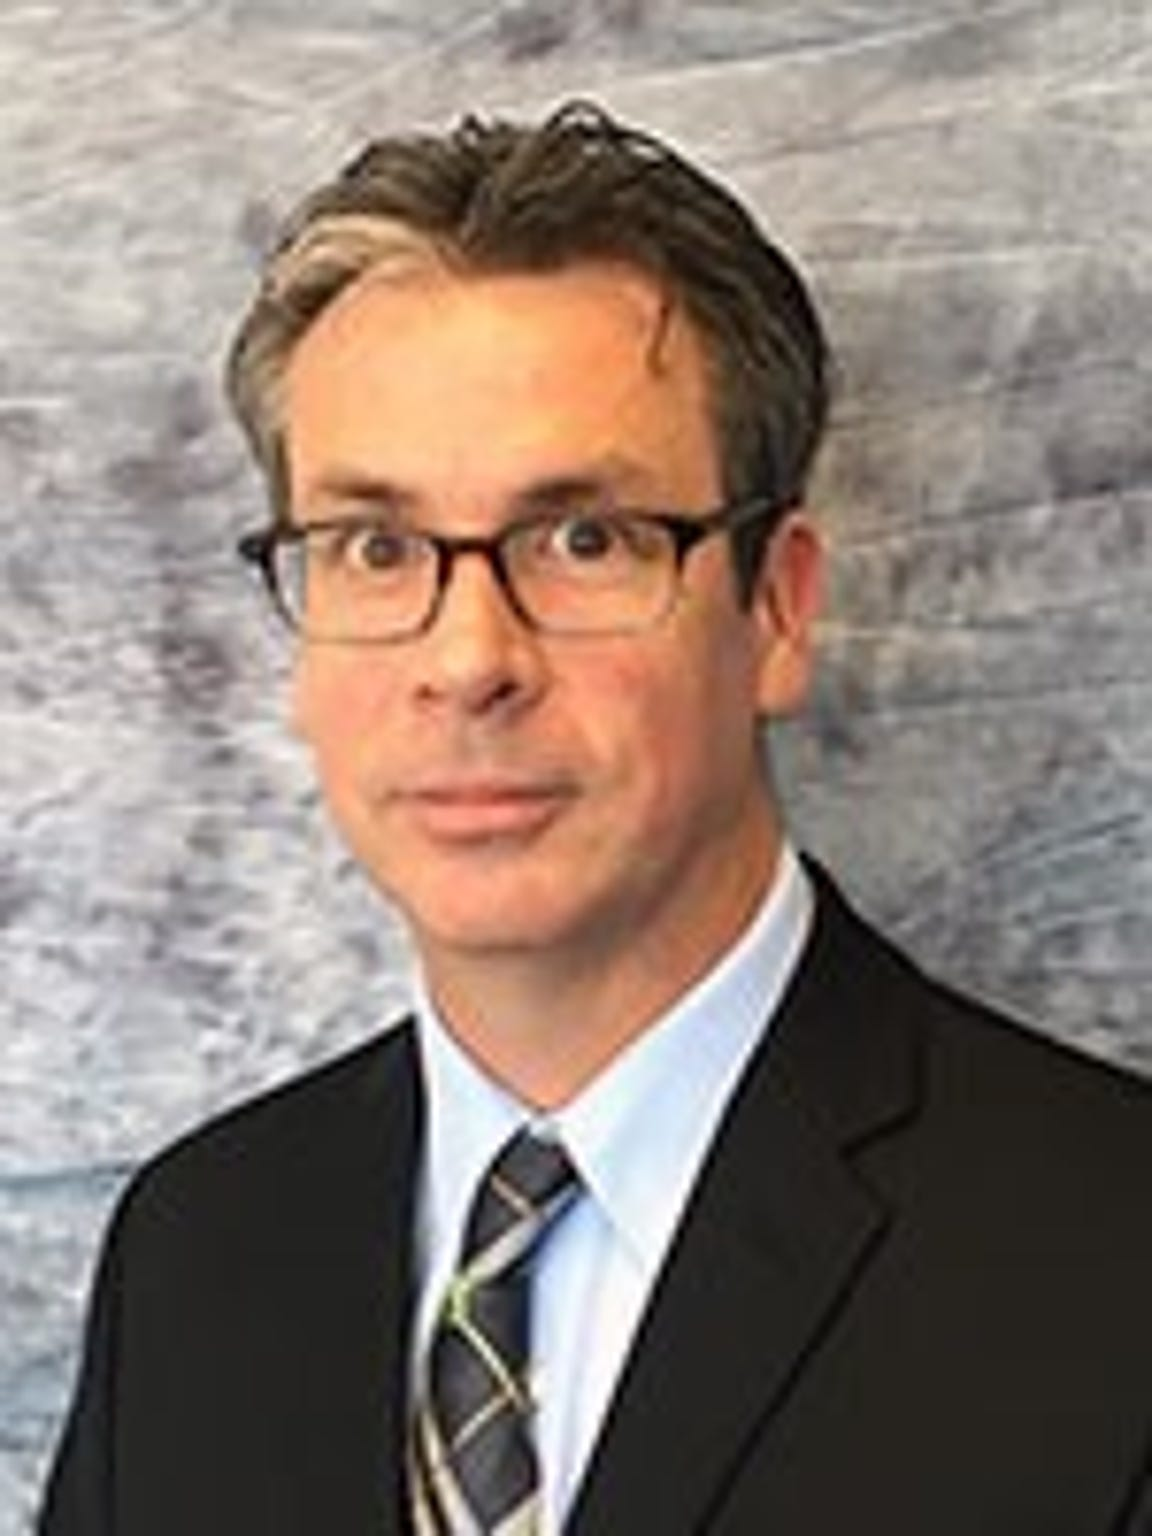 Mike Griffith, a senior school finance analyst for the Education Commission of the States